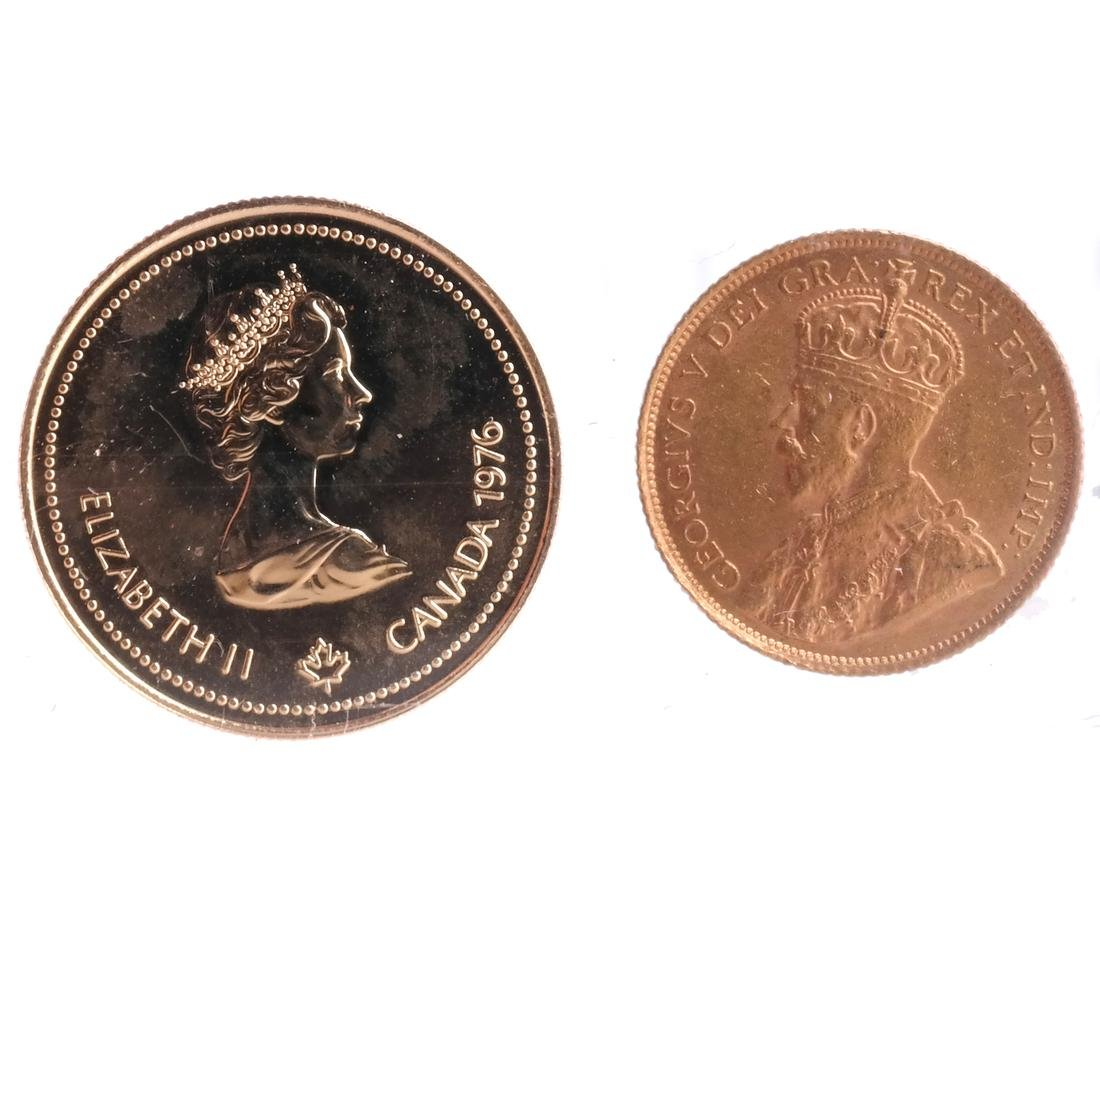 2 Canada Gold Coins